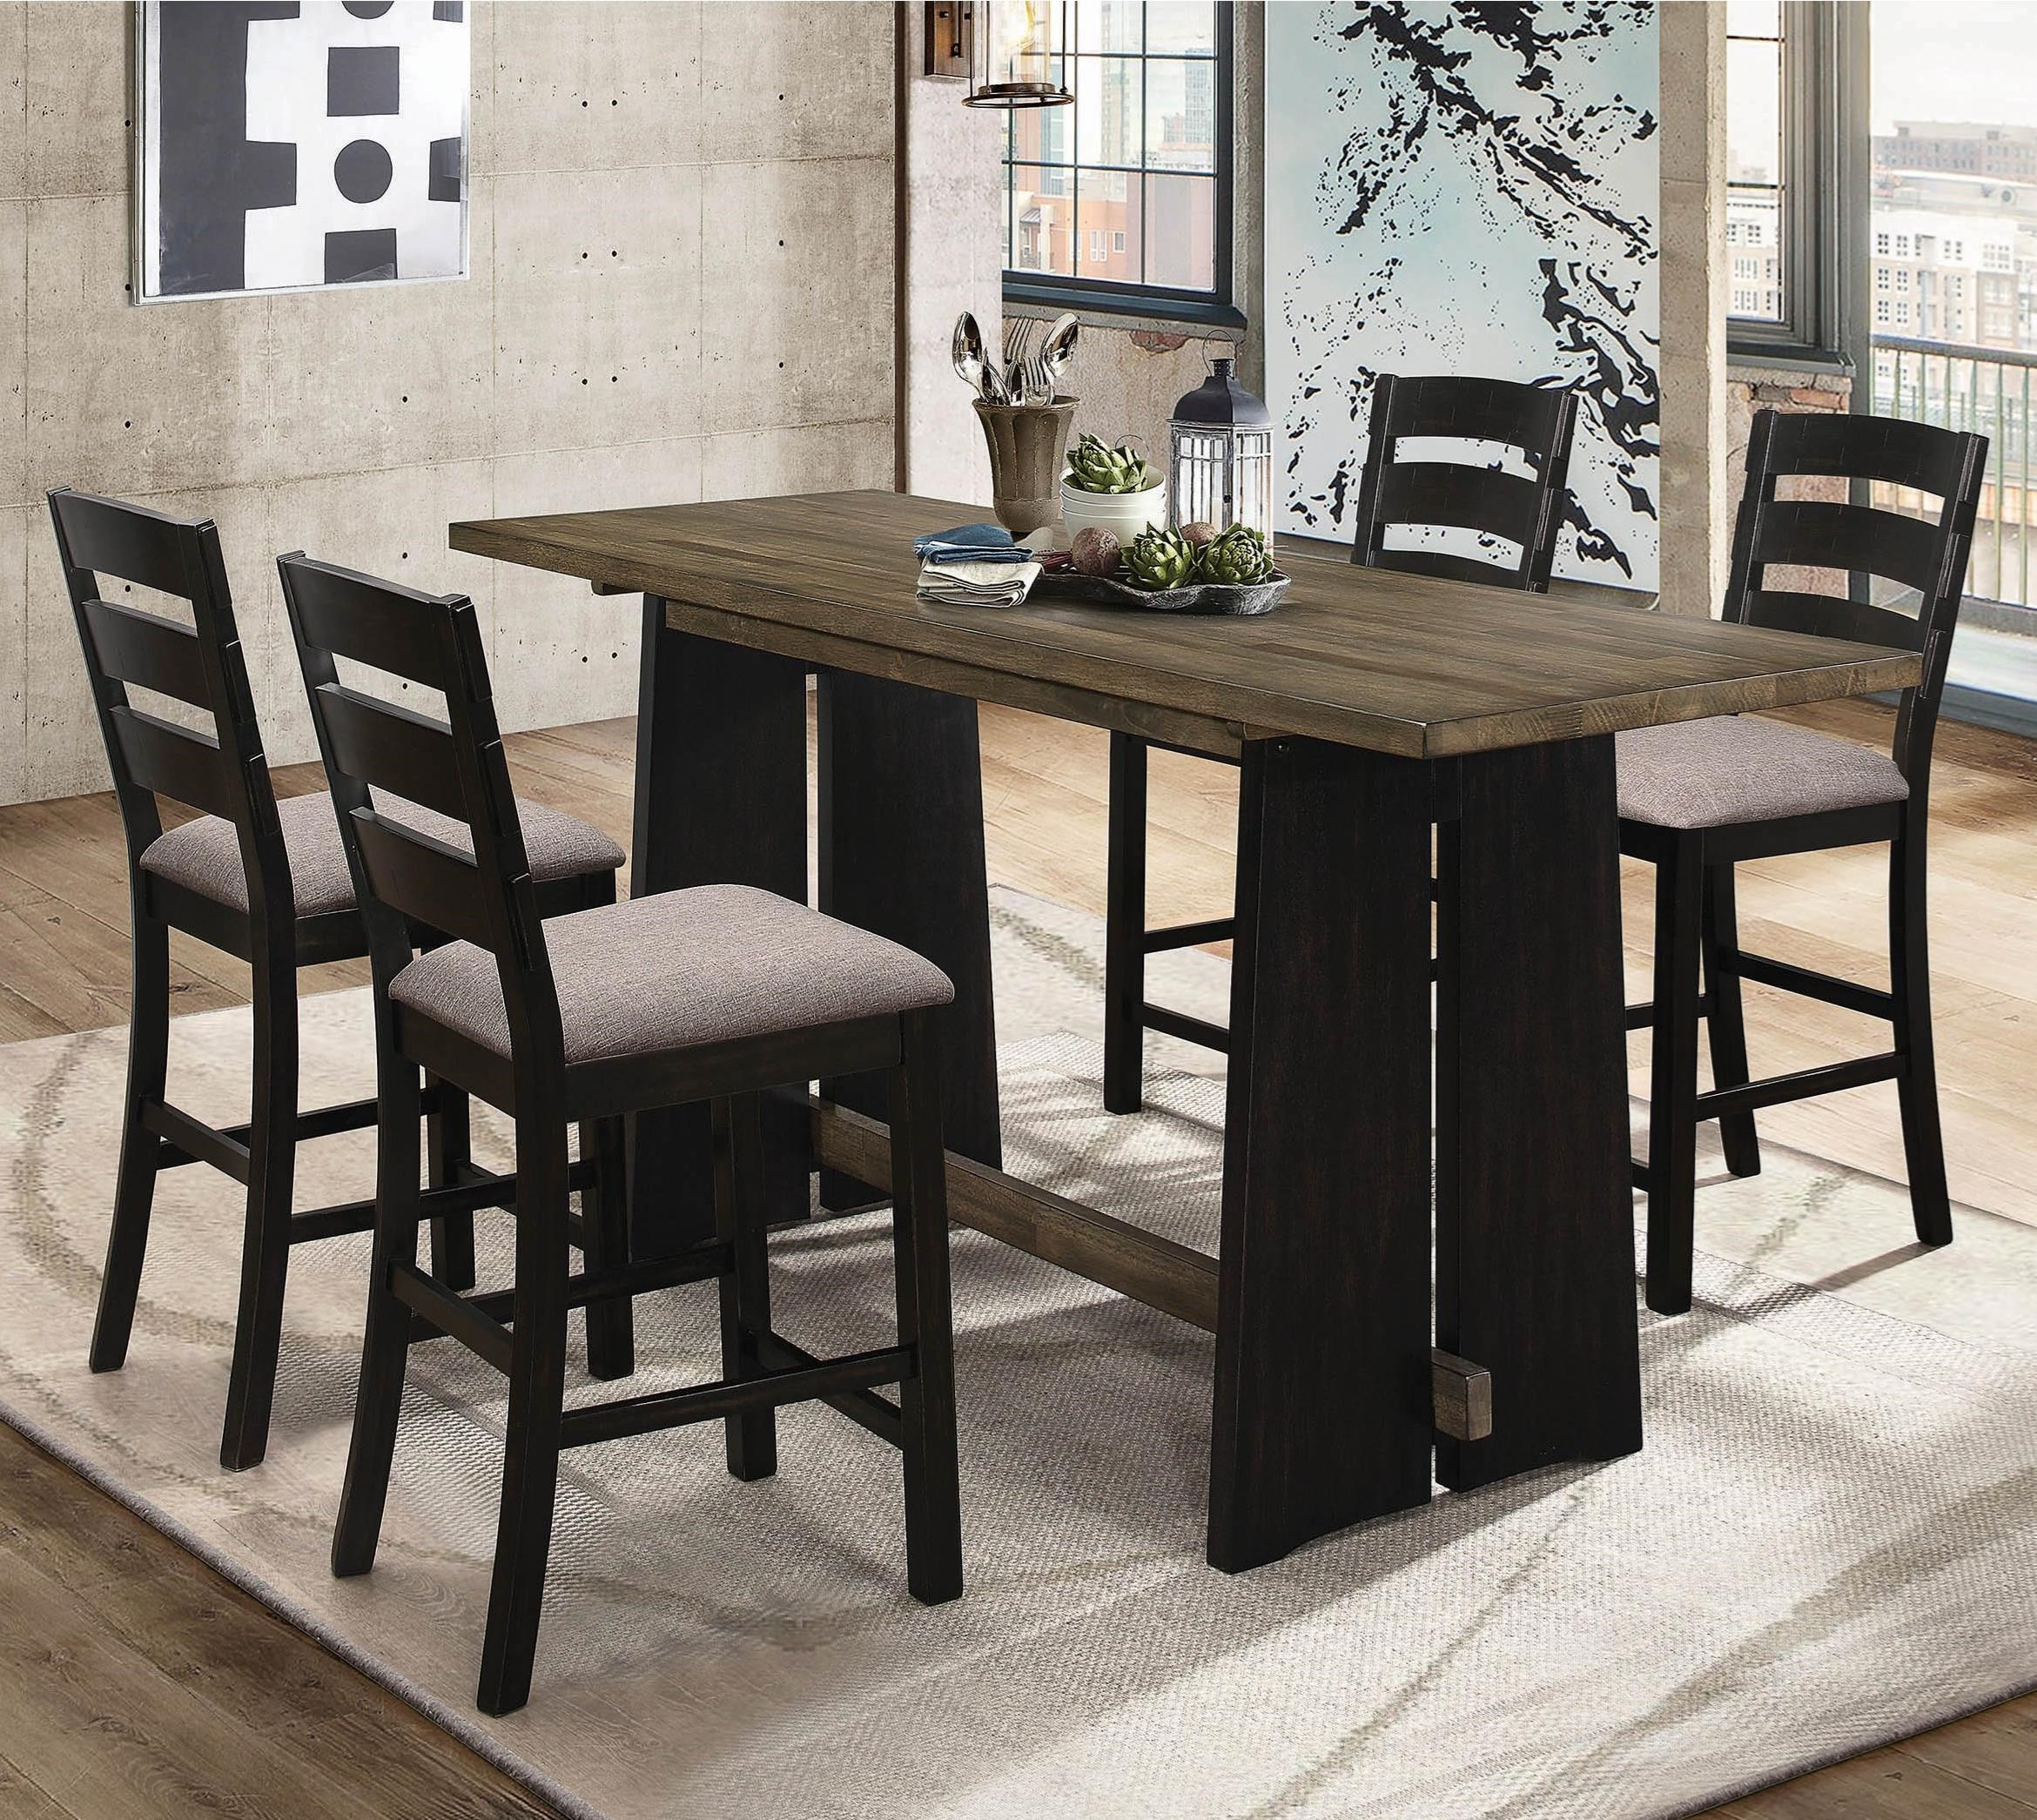 5-Piece Solid Wood Counter Height Table Set